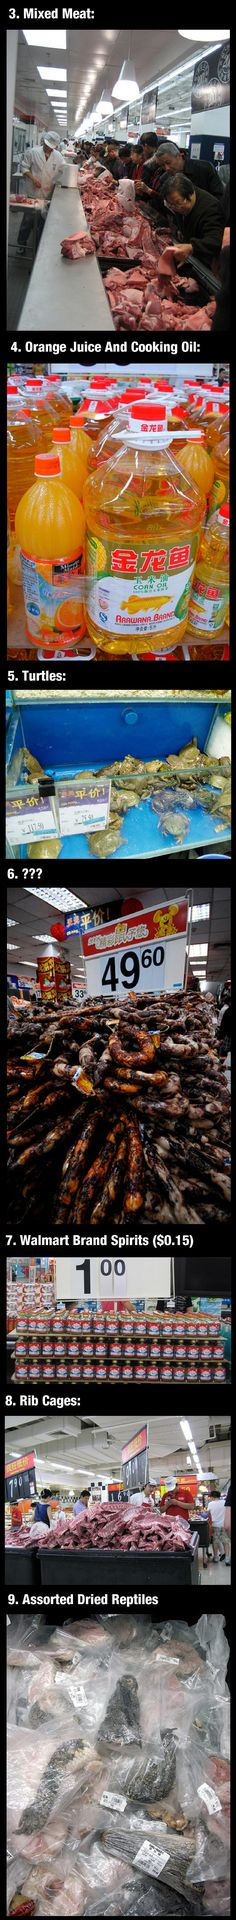 Walmart In China: Holy Sh*t